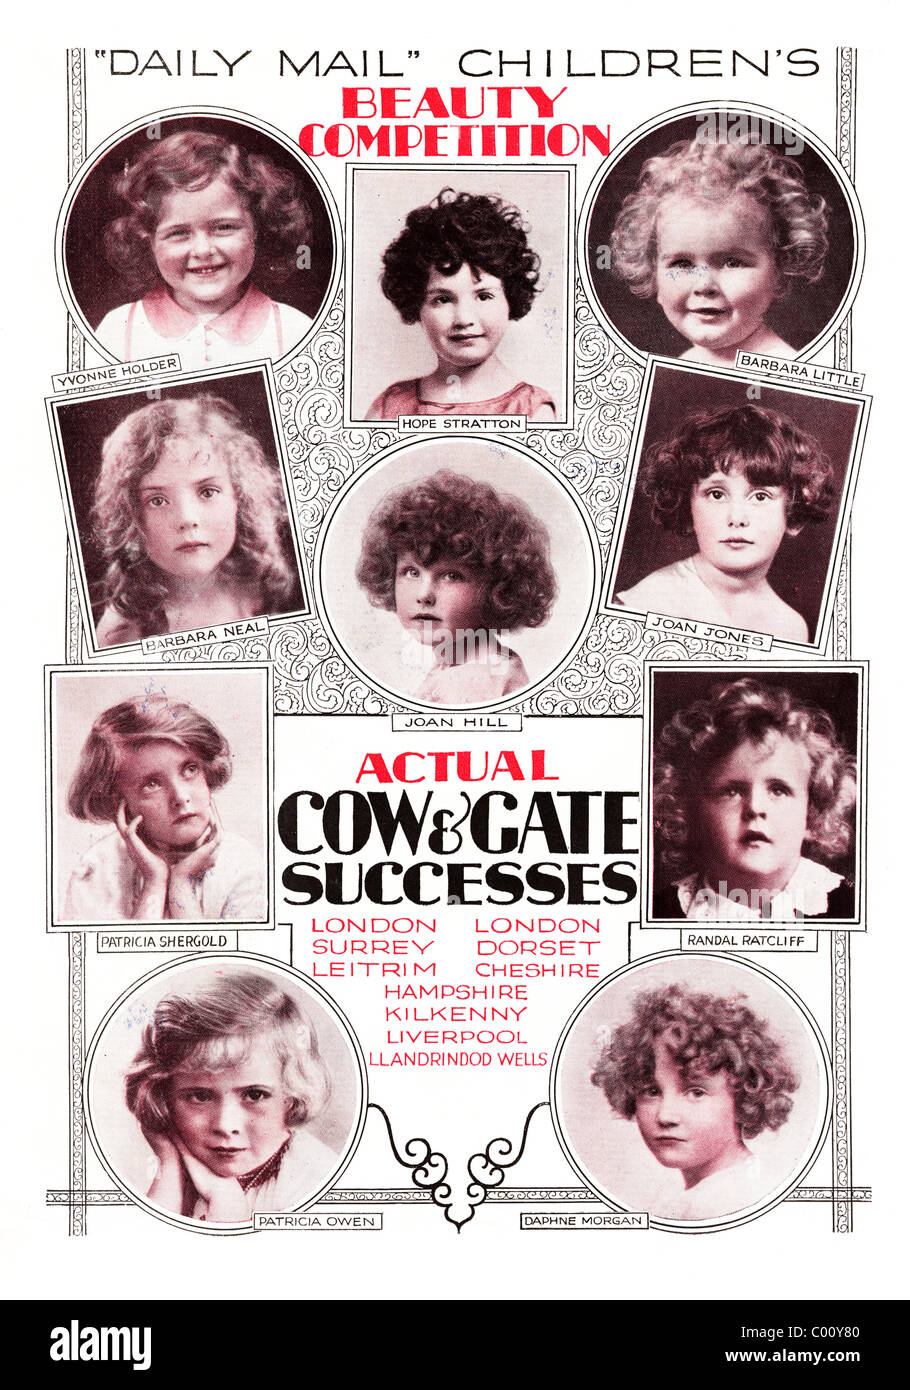 advertisement 1920s full page in consumer magazine for DAILY MAIL CHILDREN'S BEAUTY COMPETITION - Stock Image